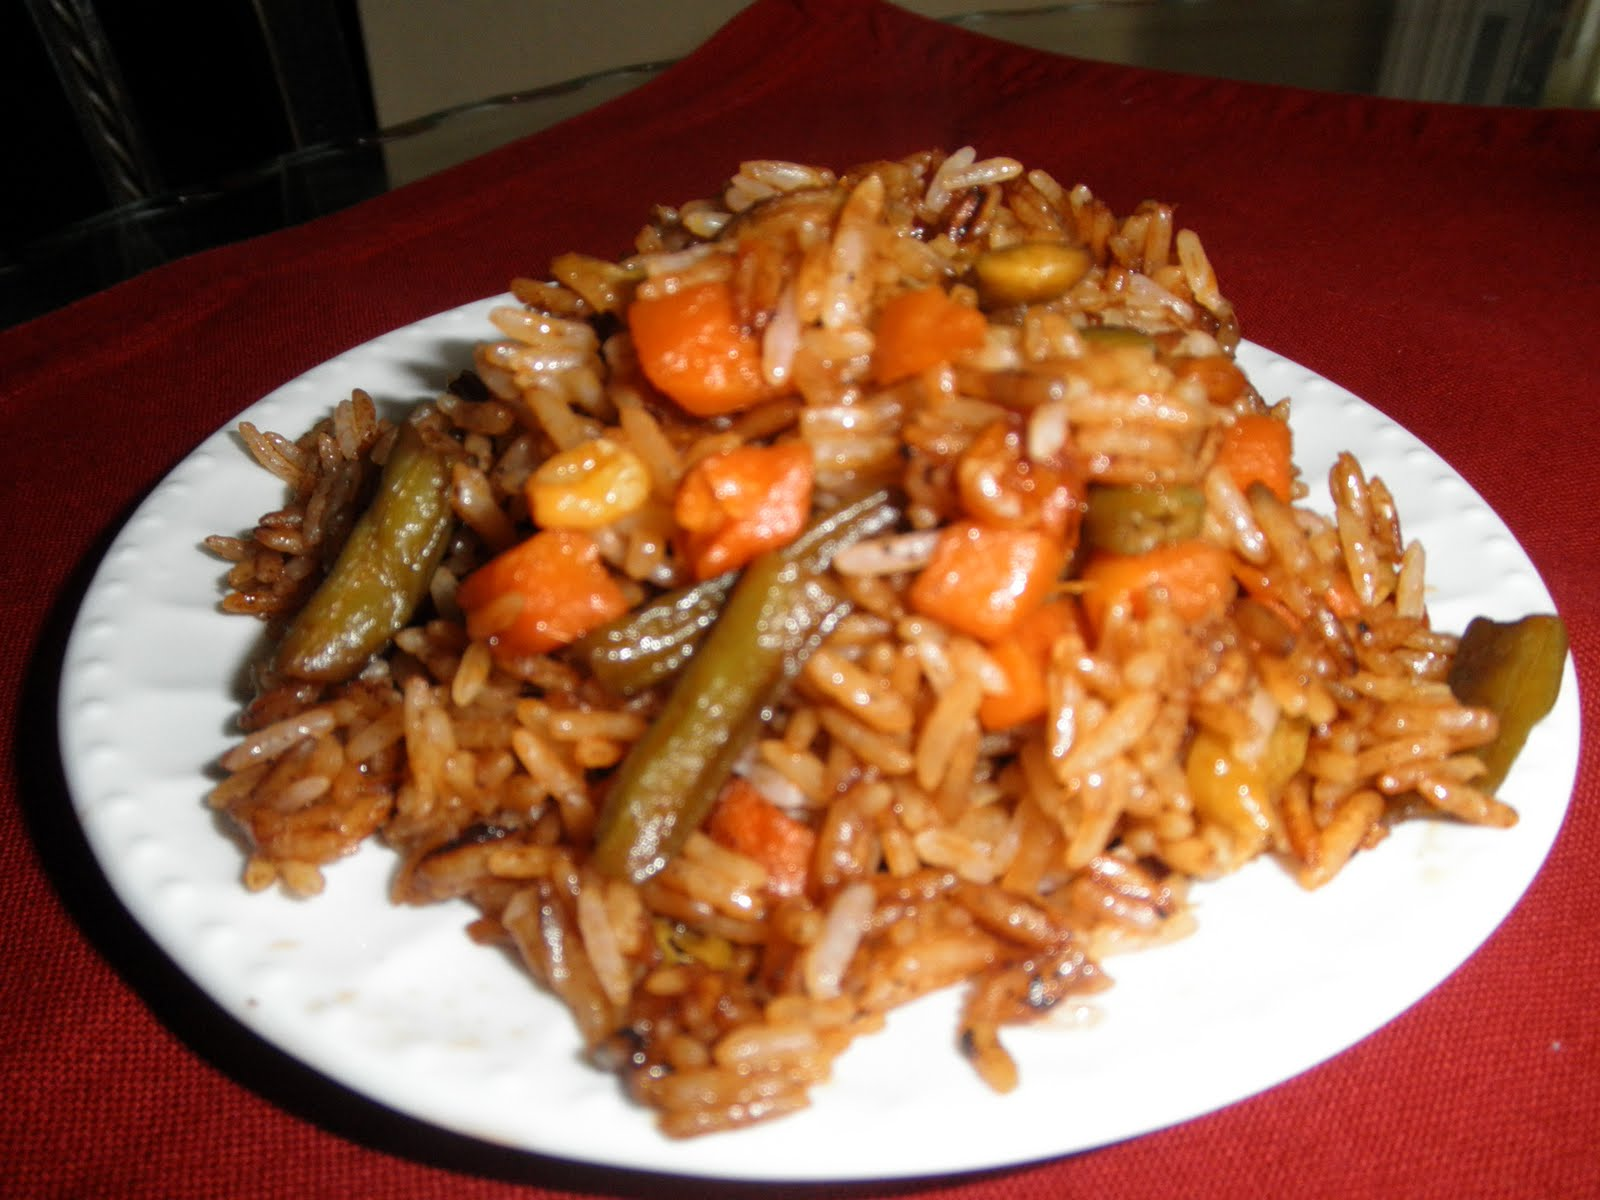 Haitian Creole Preparing Rice With Mixed Vegetables And